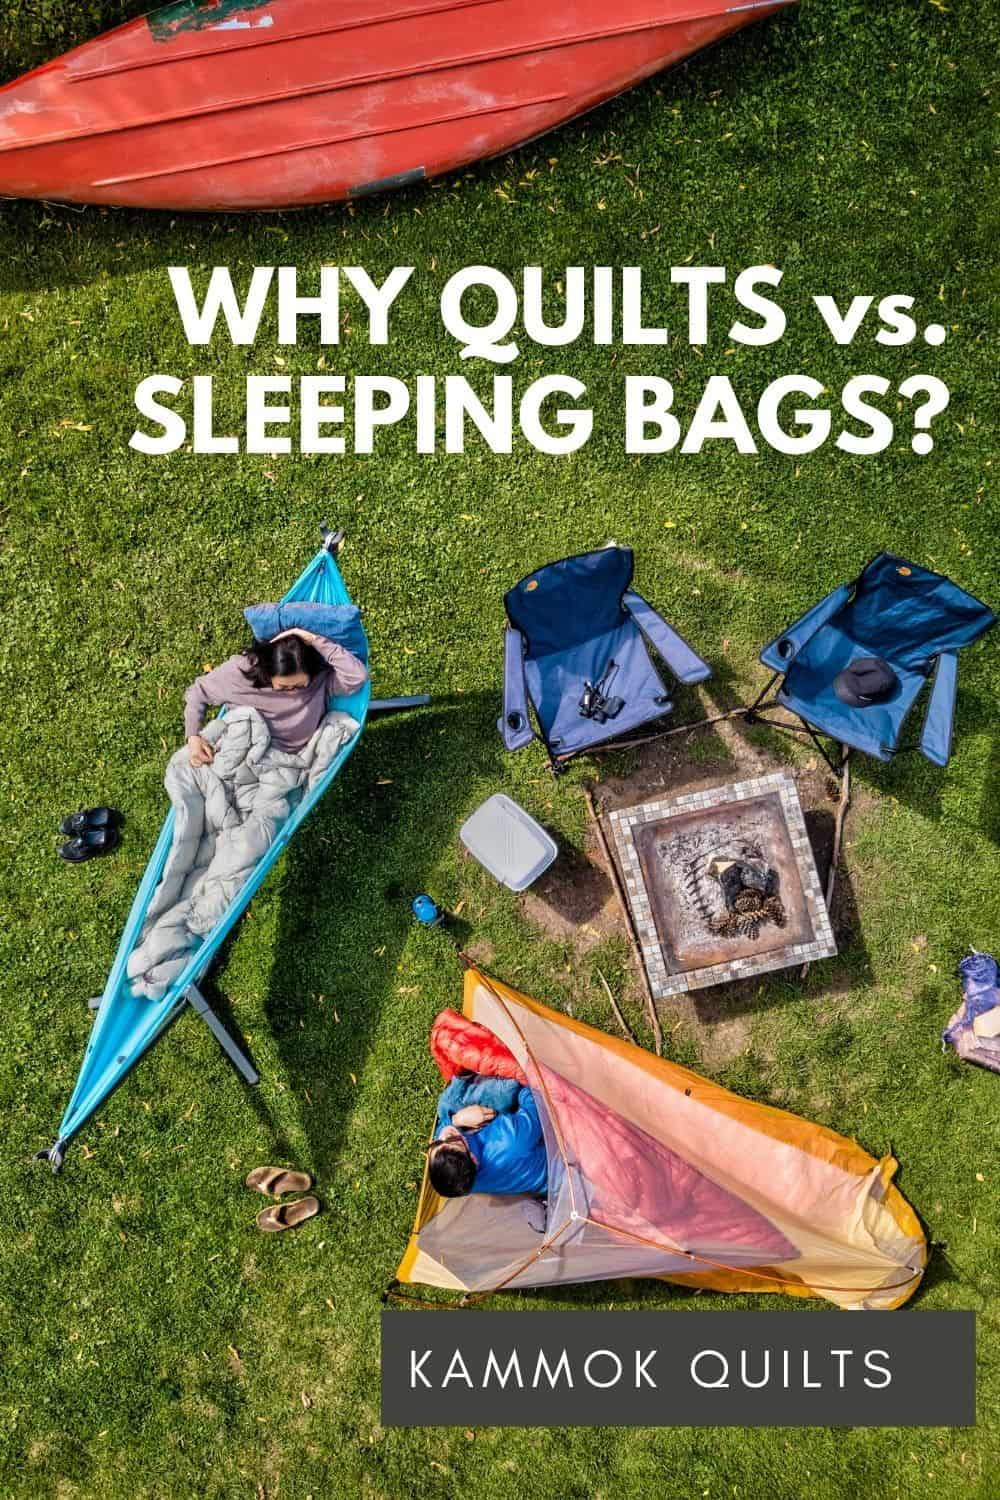 Quilt vs. Sleeping Bag - The Kammok Firebelly and Bobcat